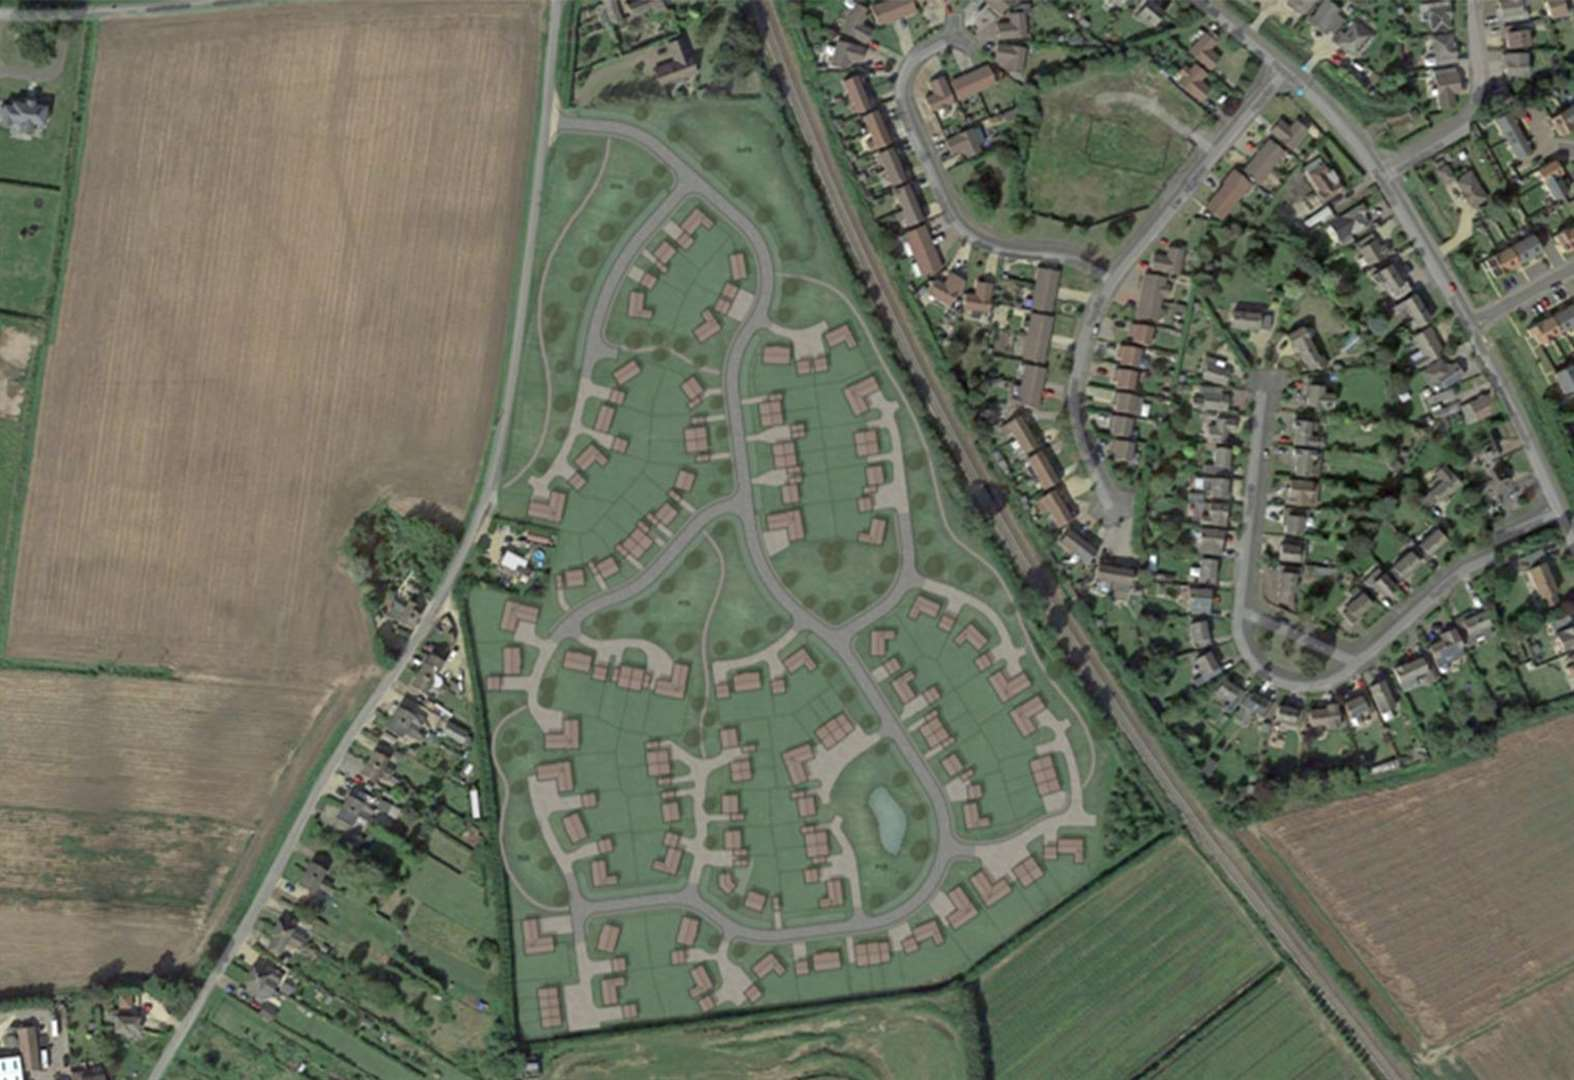 Plan for 100 new homes on Pinchbeck nursery approved